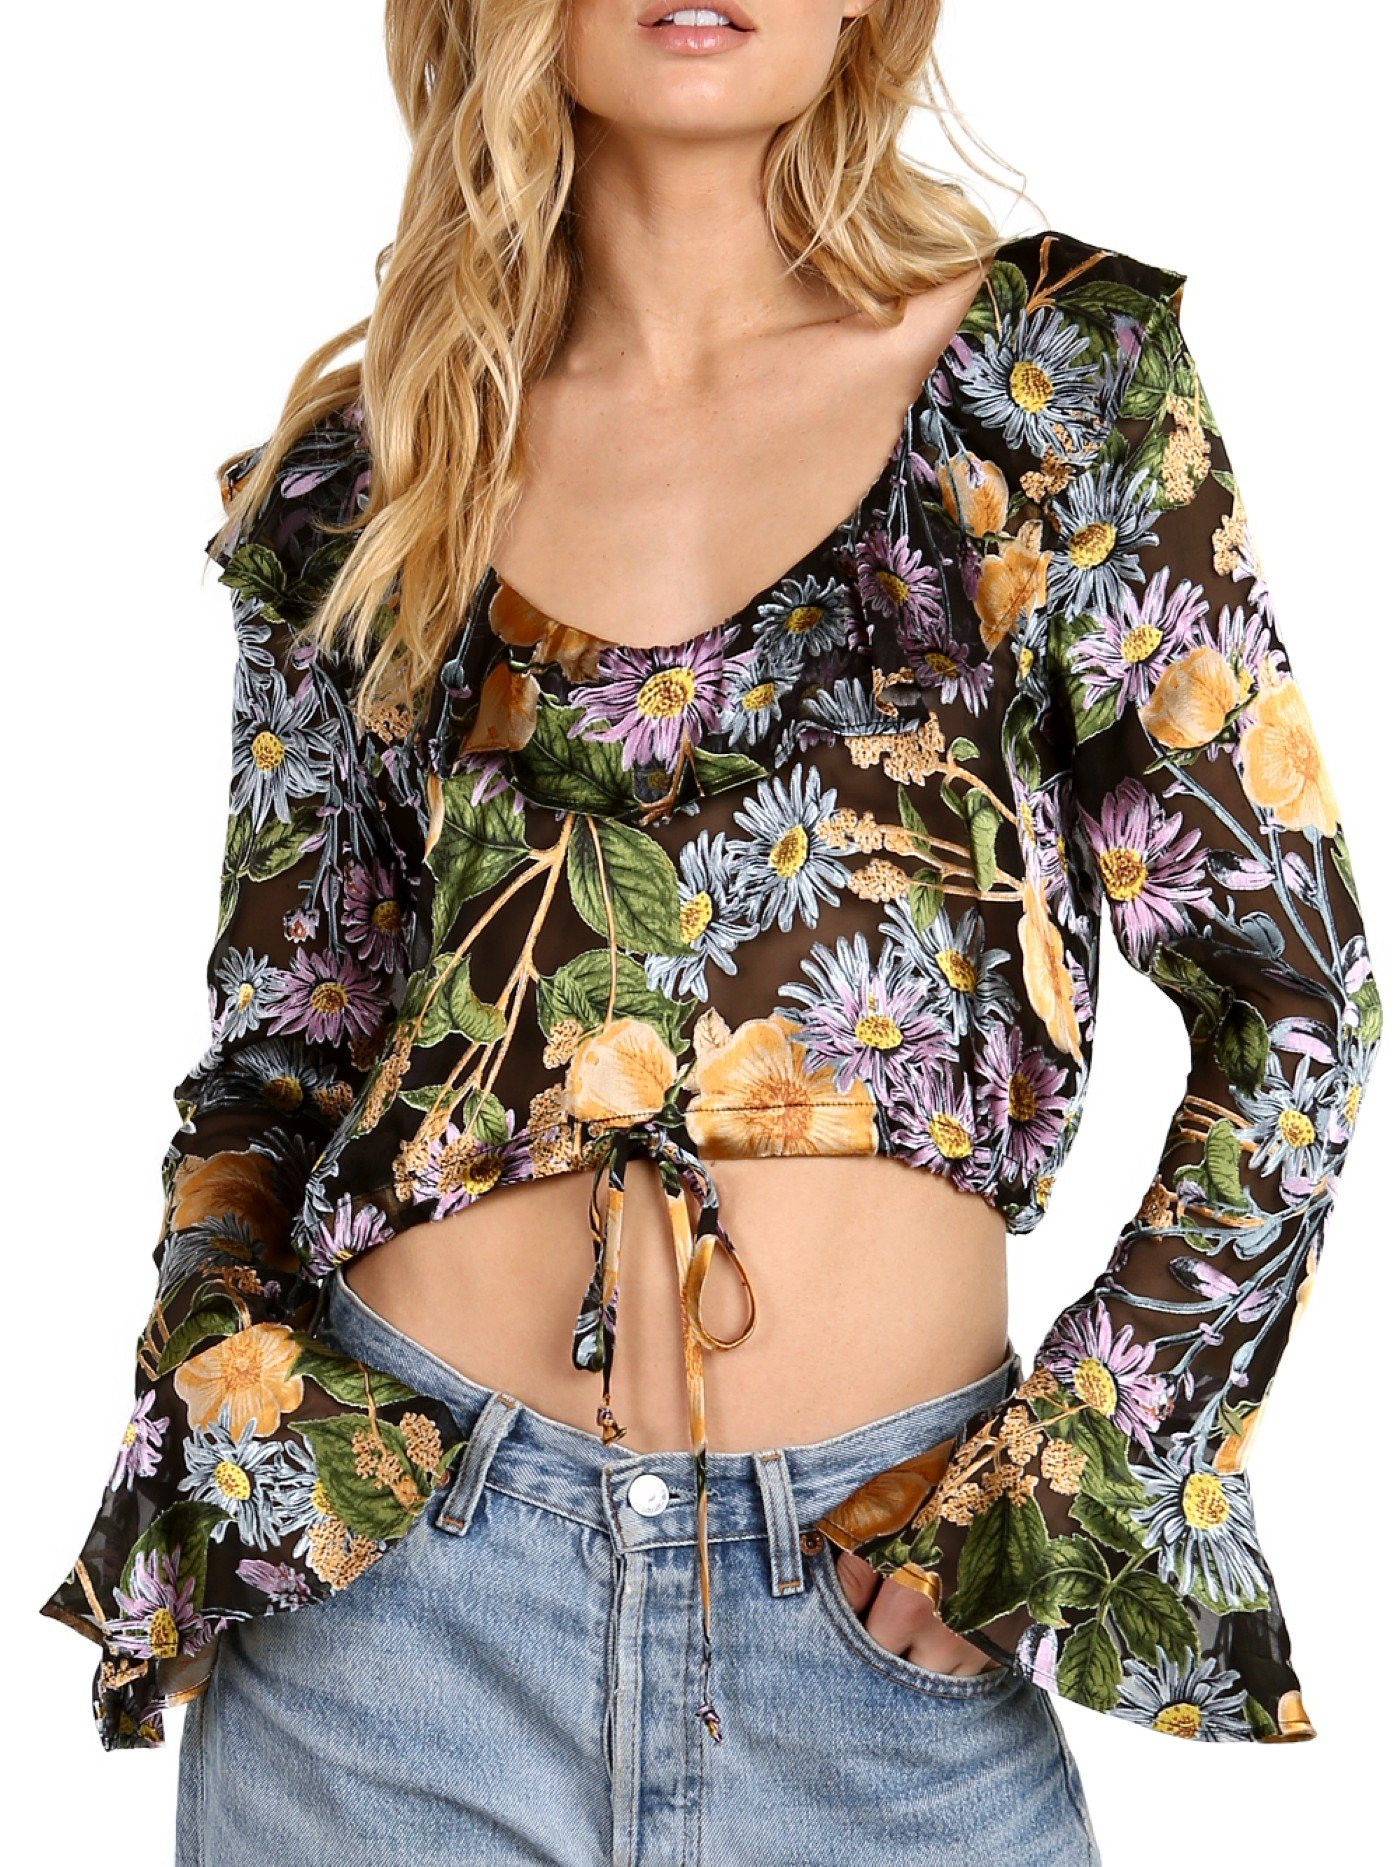 For Love and Lemons Women's Luciana Ruffle Blouse Black Floral Blouse